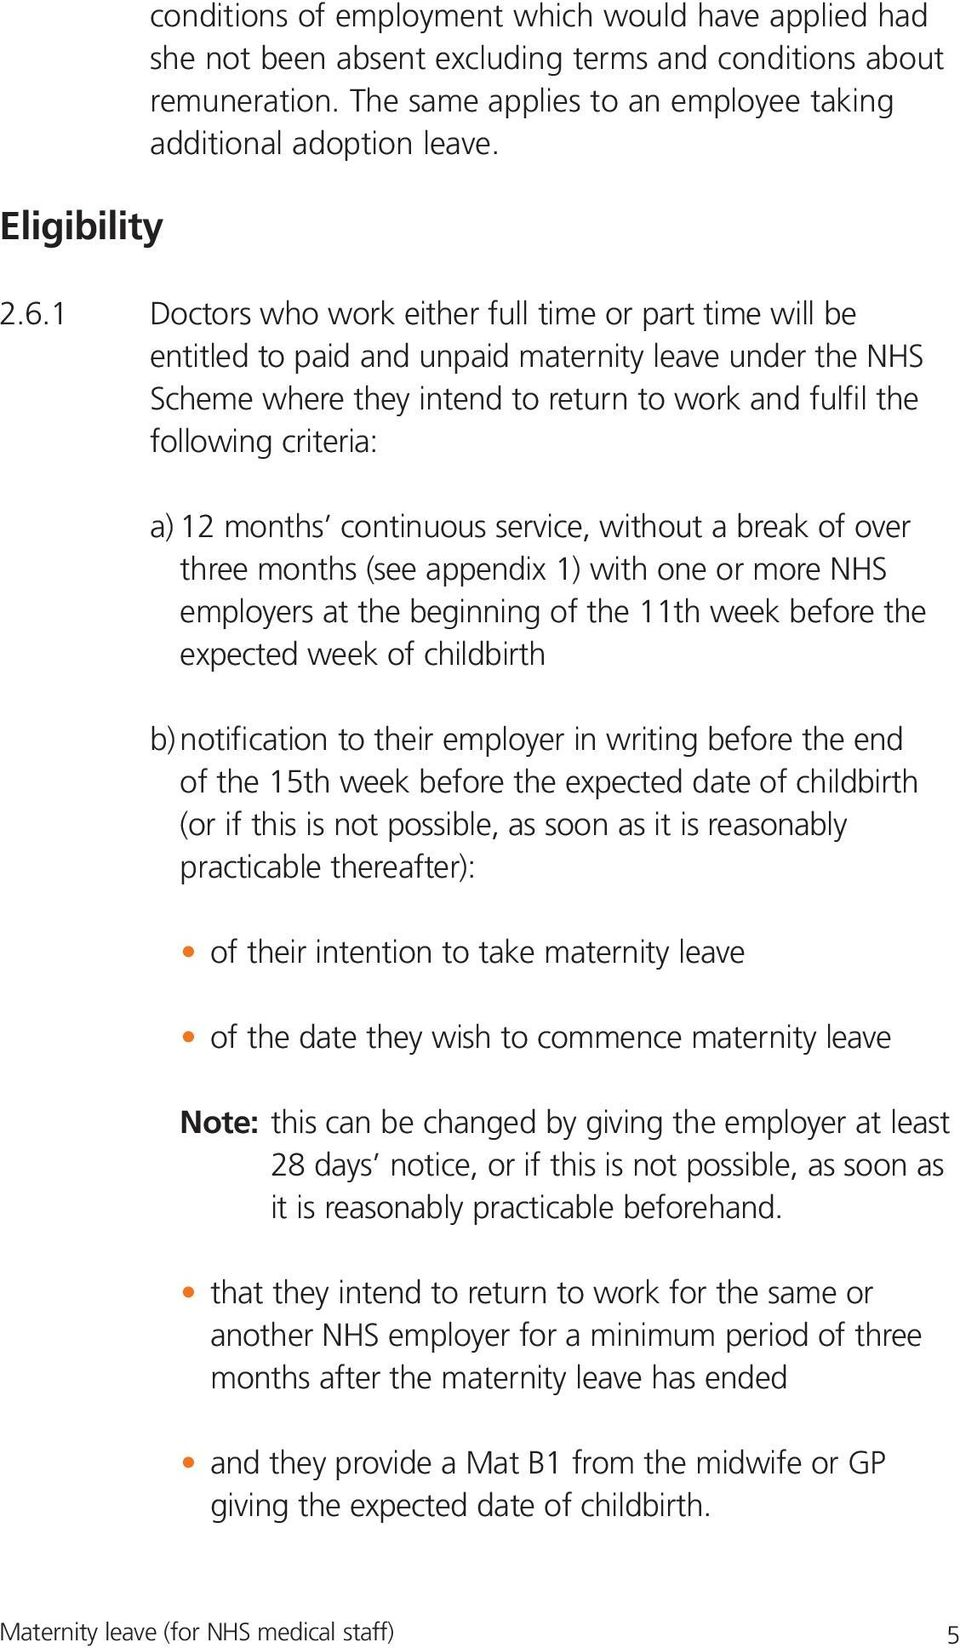 1 Doctors who work either full time or part time will be entitled to paid and unpaid maternity leave under the NHS Scheme where they intend to return to work and fulfil the following criteria: a) 12